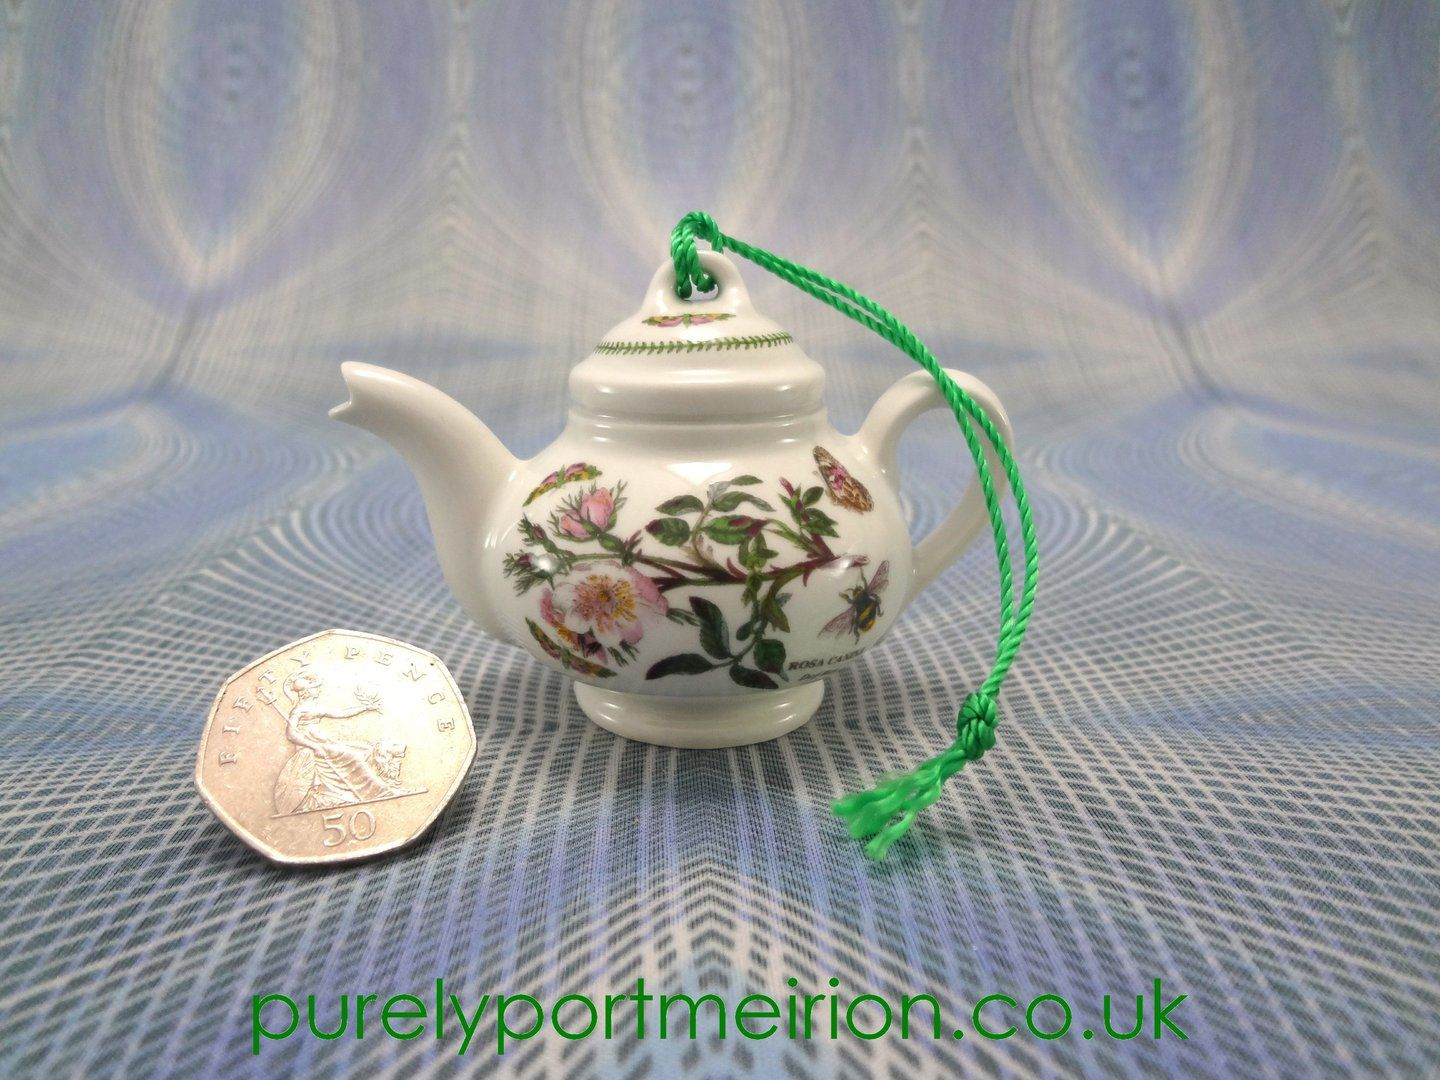 a delightful portmeirion miniature teapot xmas decoration in botanic garden design by susan williams ellis buy from purely portmeirion